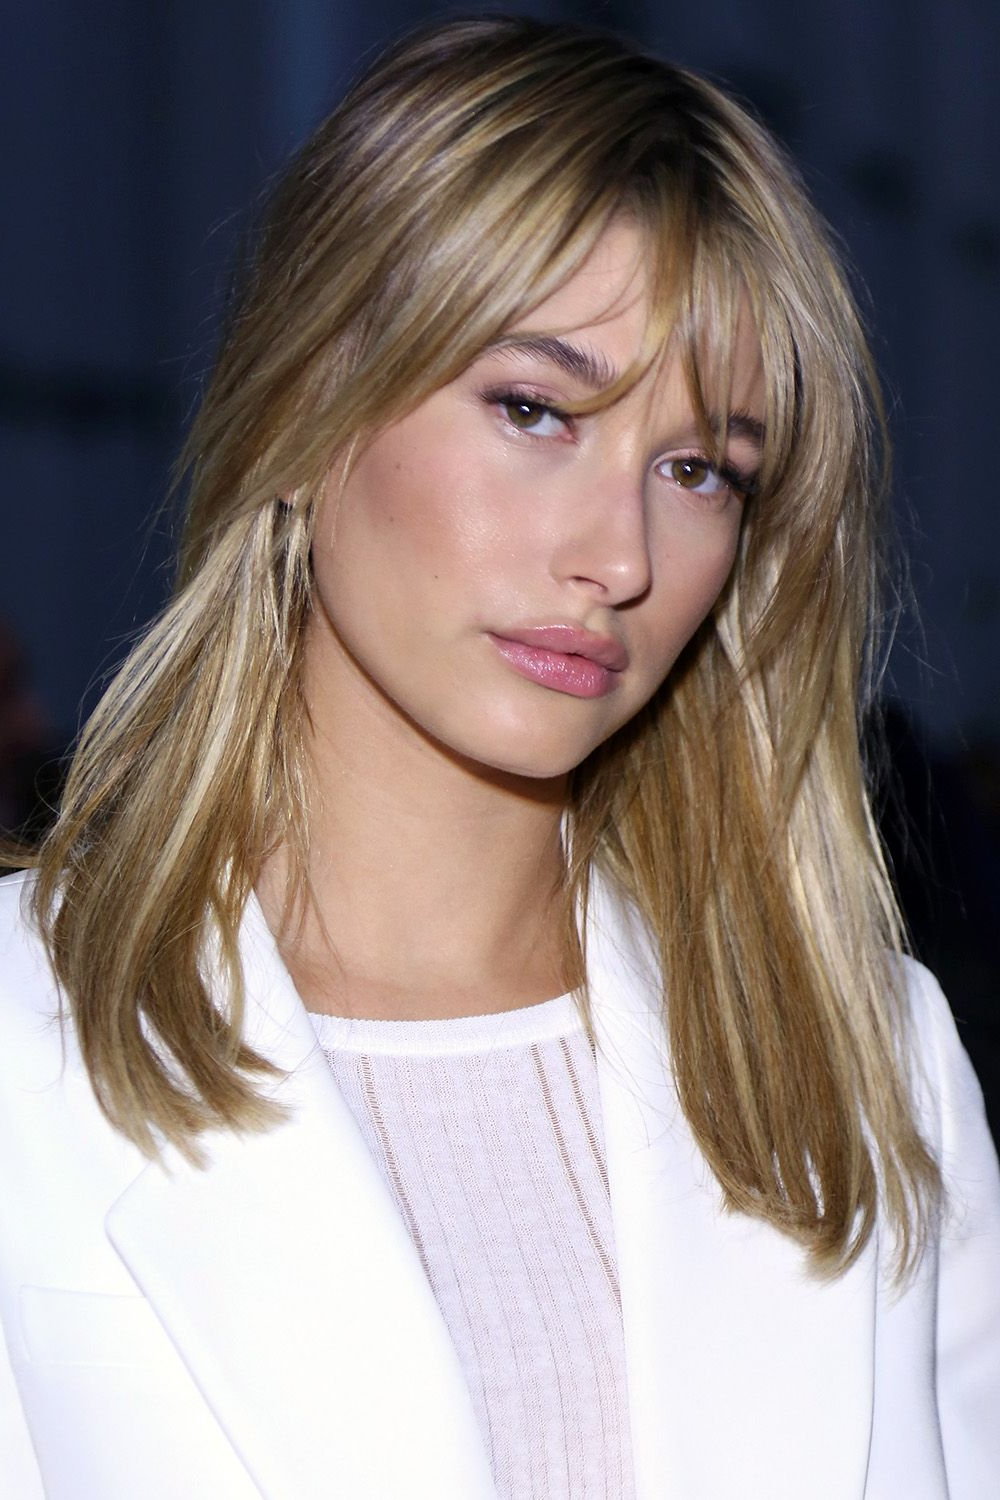 40 Best Medium Hairstyles – Celebrities With Shoulder Length Haircuts With Regard To Fashionable Medium Hairstyles For Women With Bangs (View 6 of 20)